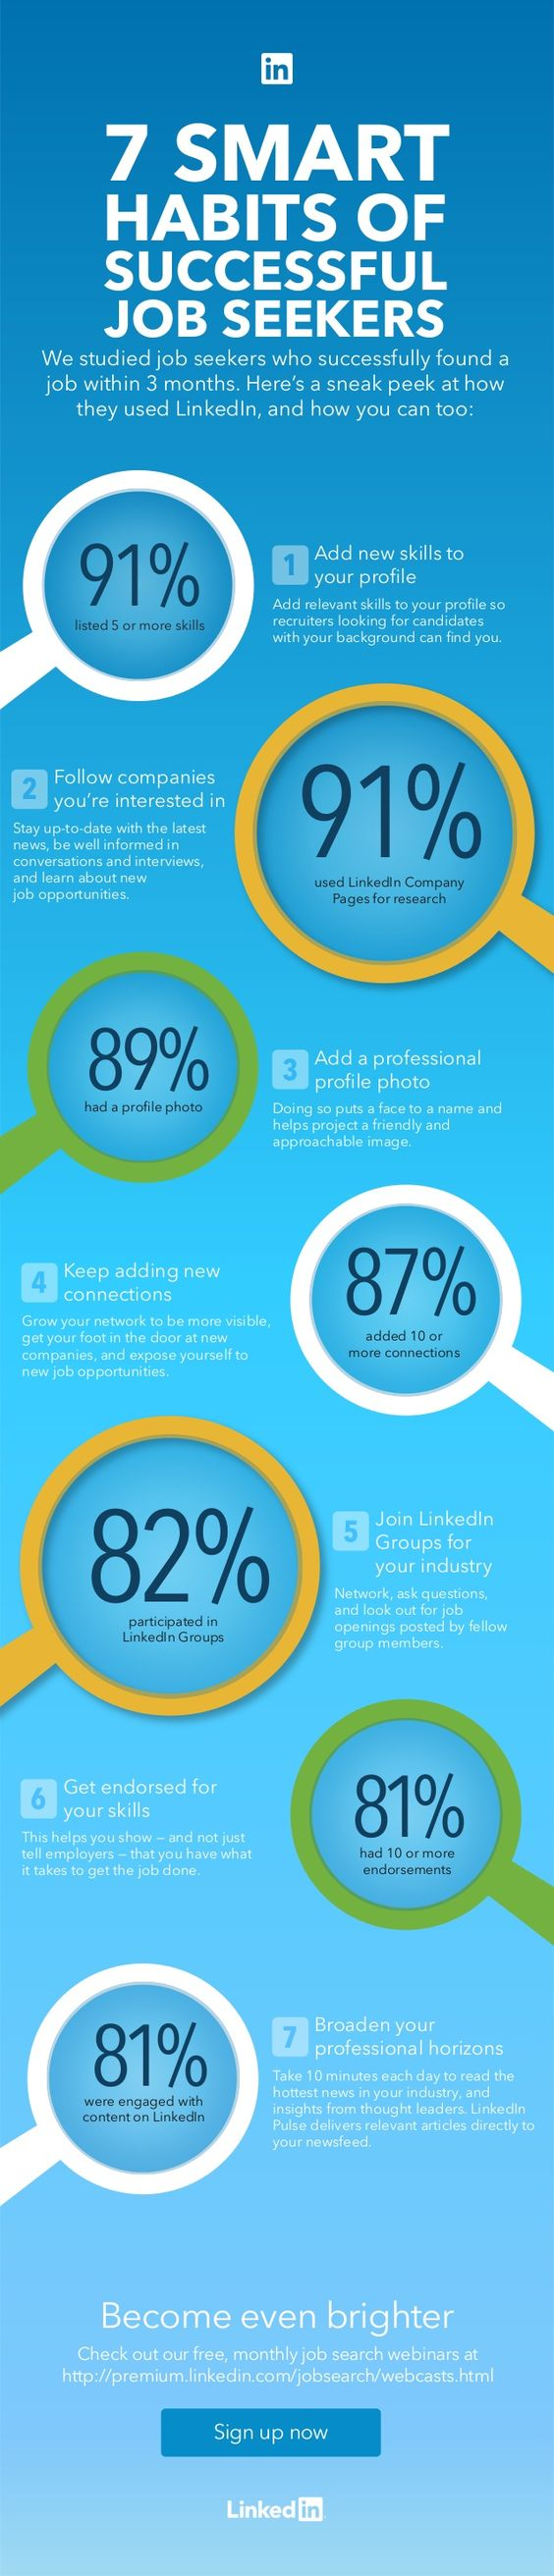 7 Smart LinkedIn Habits of Successful Job Seekers. To find out how #Goodwill can help you in your search for a job, visit: http://www.goodwillvalleys.com/work-and-training-services/job-seeker-services/ #careers